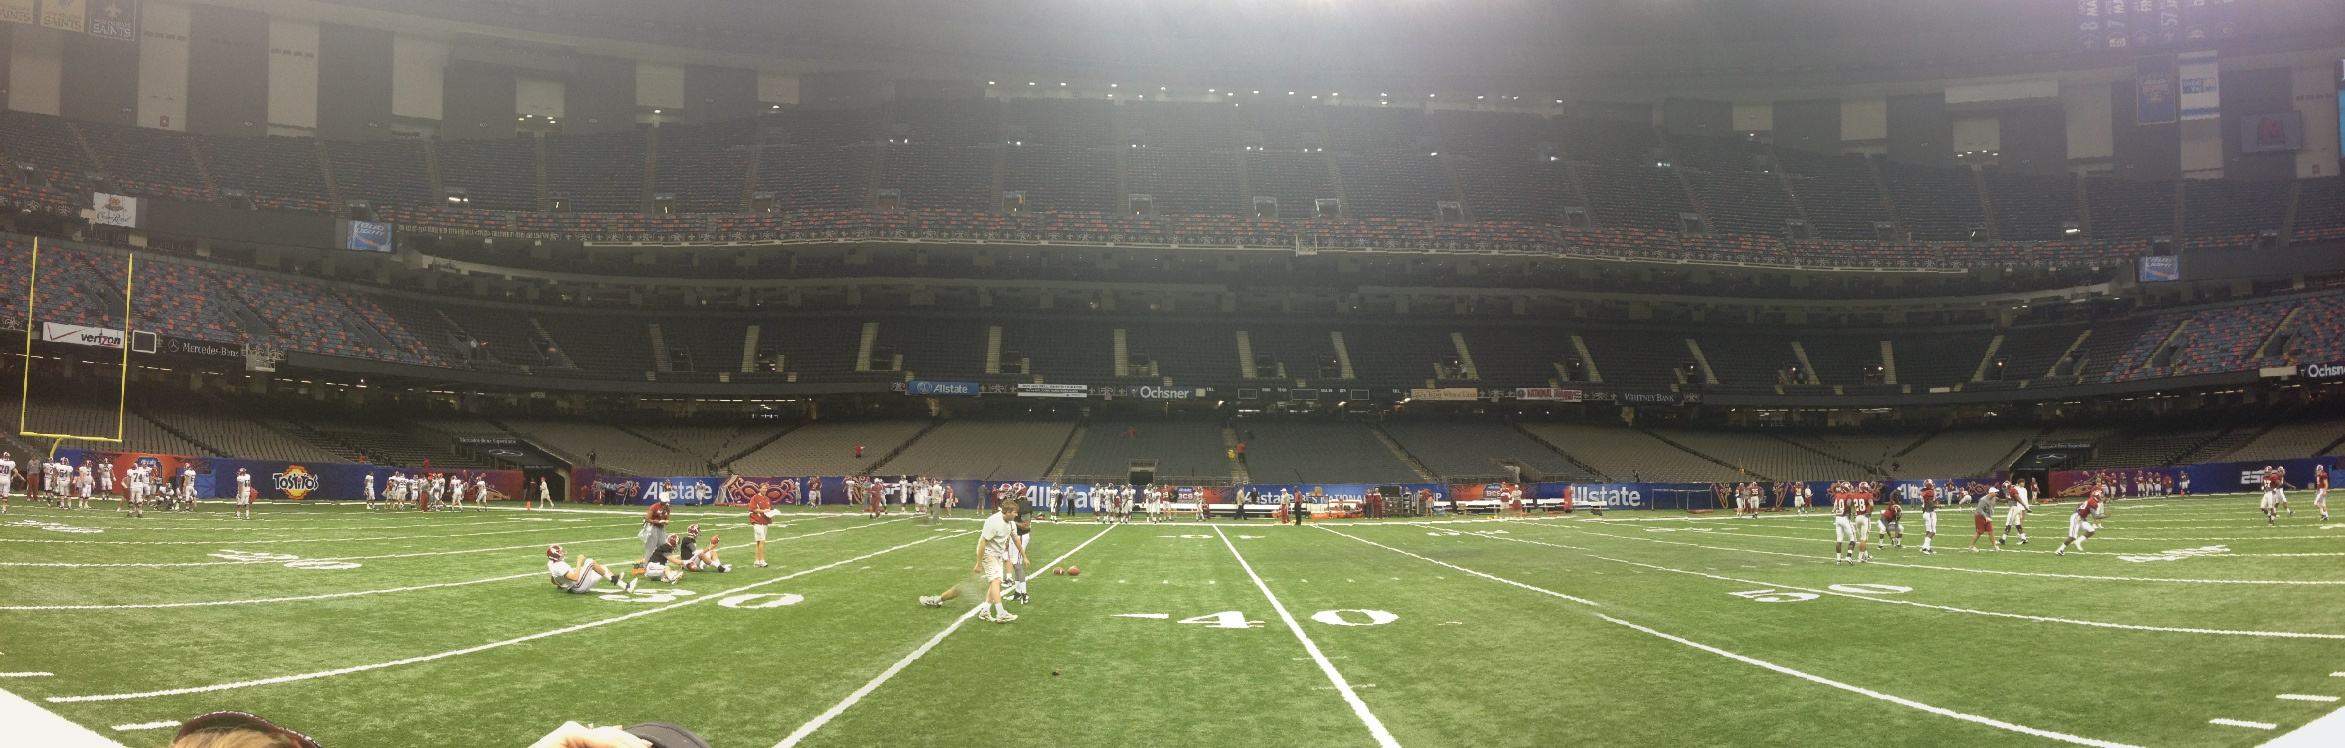 Crimson Tide Practice for First Time in the Superdome